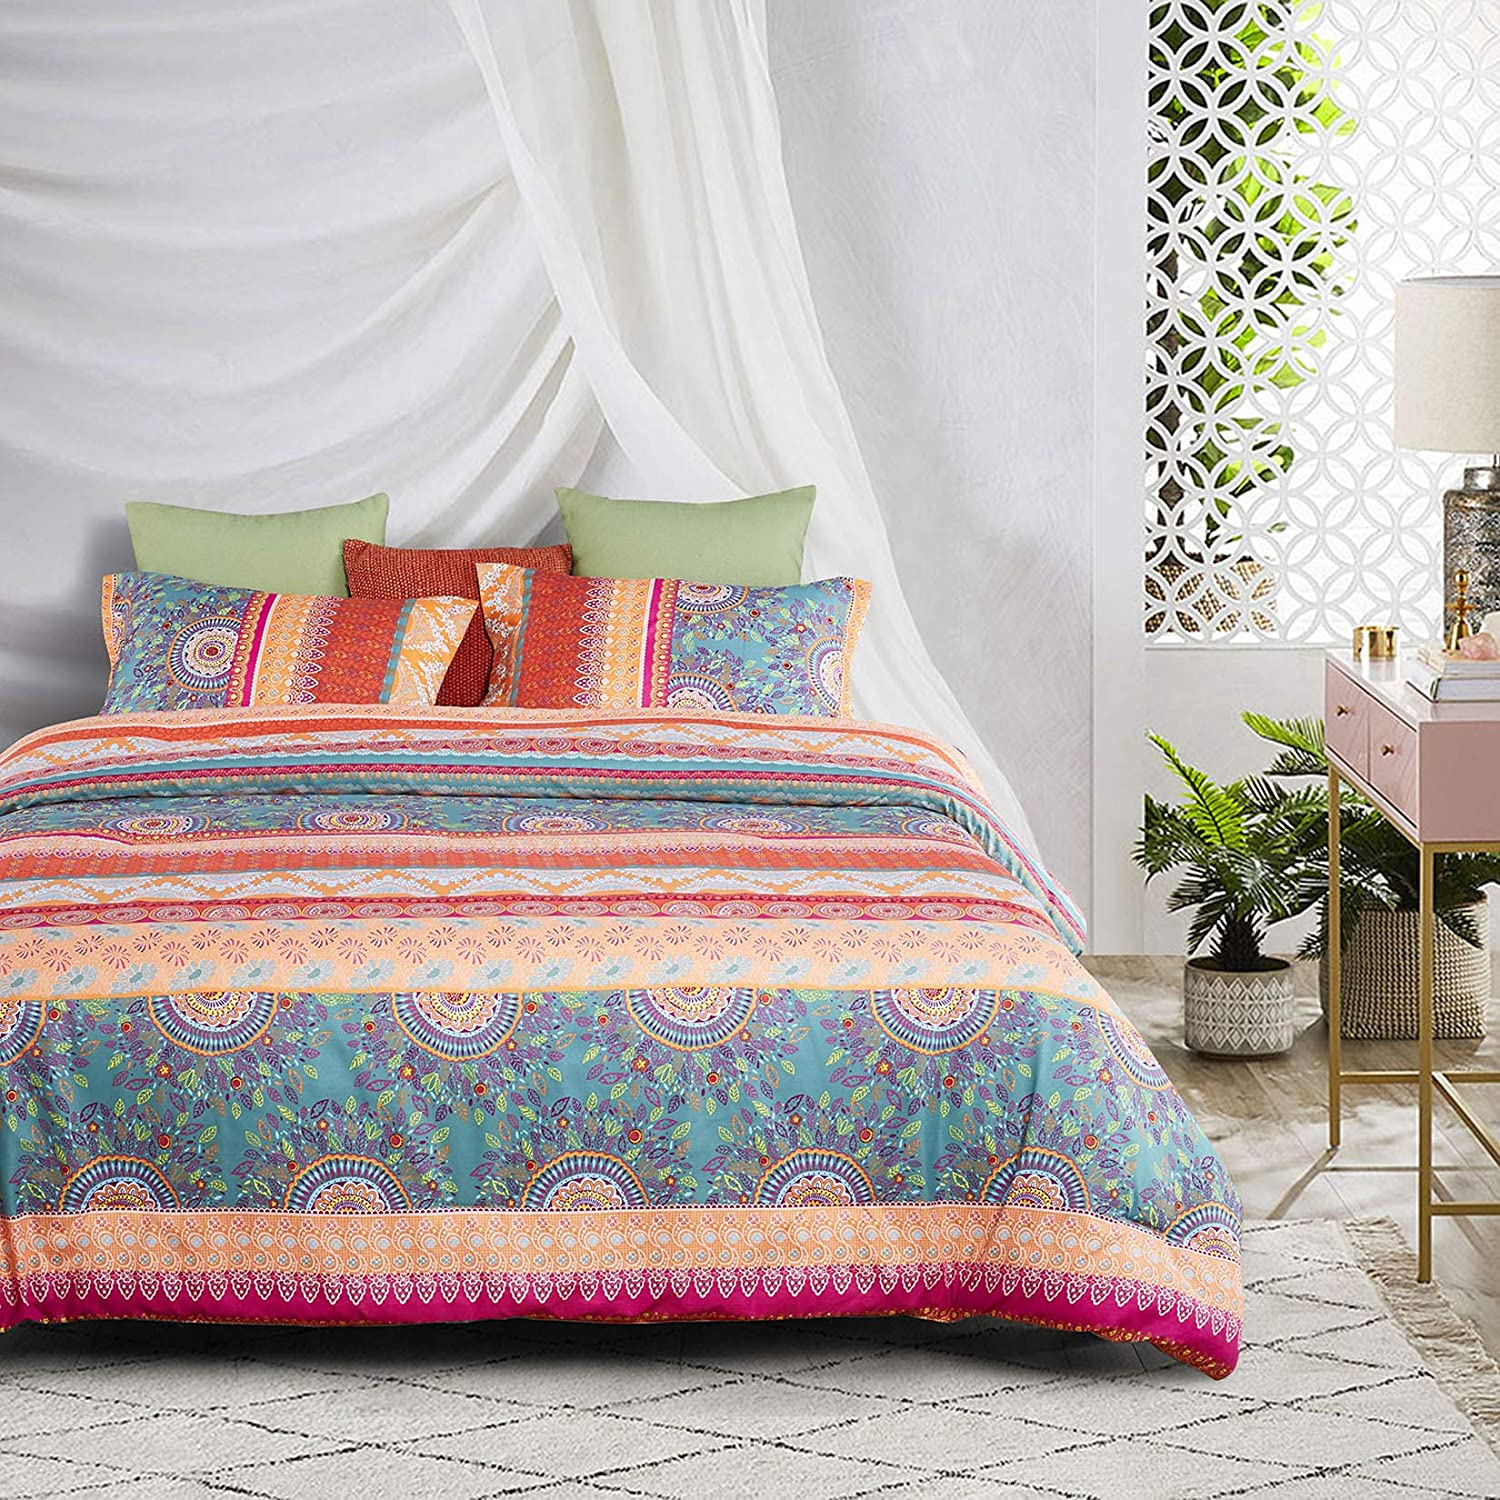 Wake In Cloud - Bohemian Comforter Set, Orange Coral Boho Chic Mandala Pattern Printed, Soft Microfiber Bedding